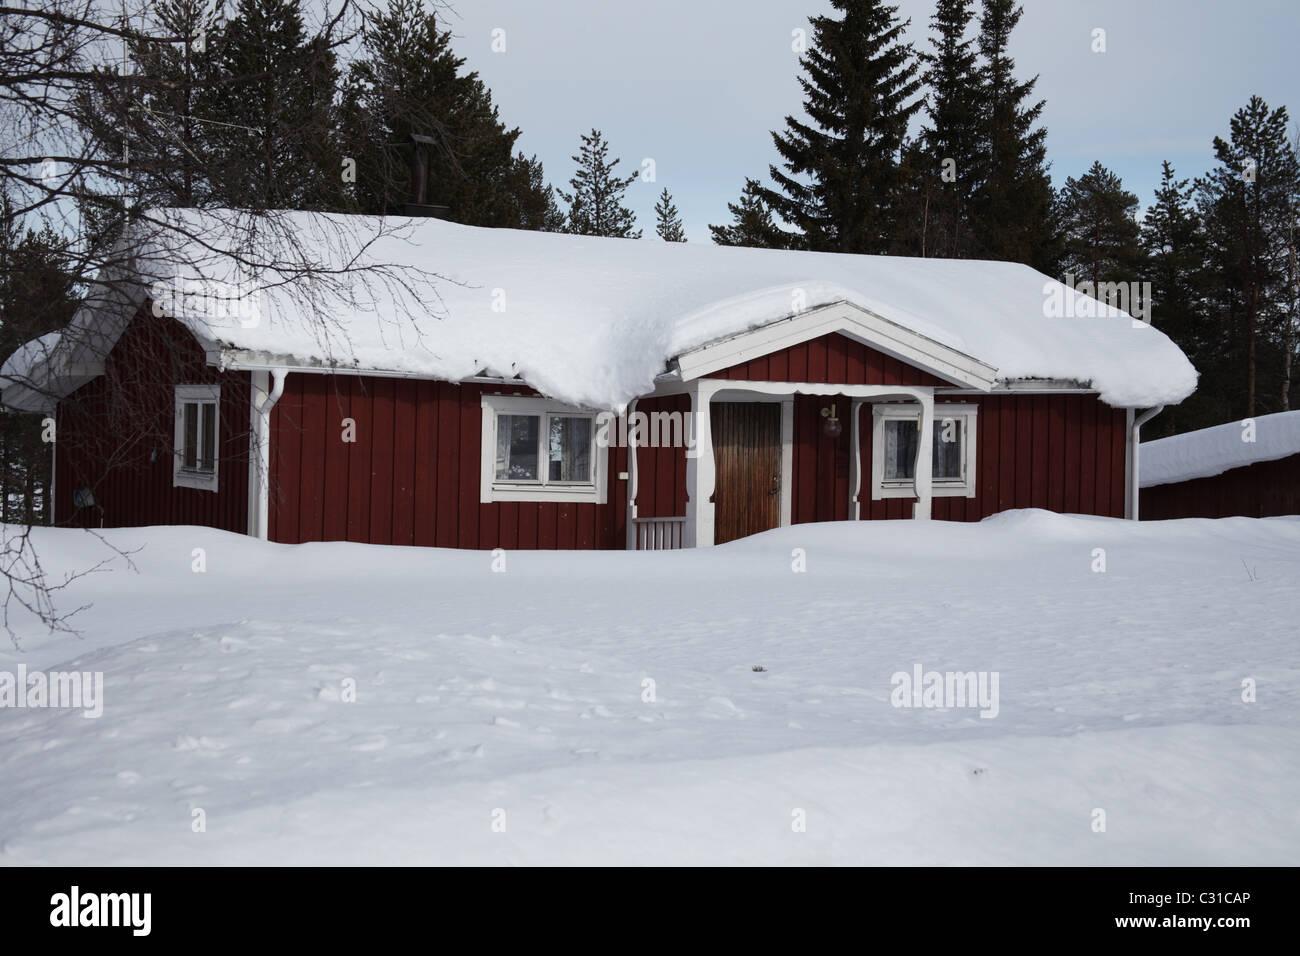 Traditional wooden holiday home in Northern Sweden - Stock Image